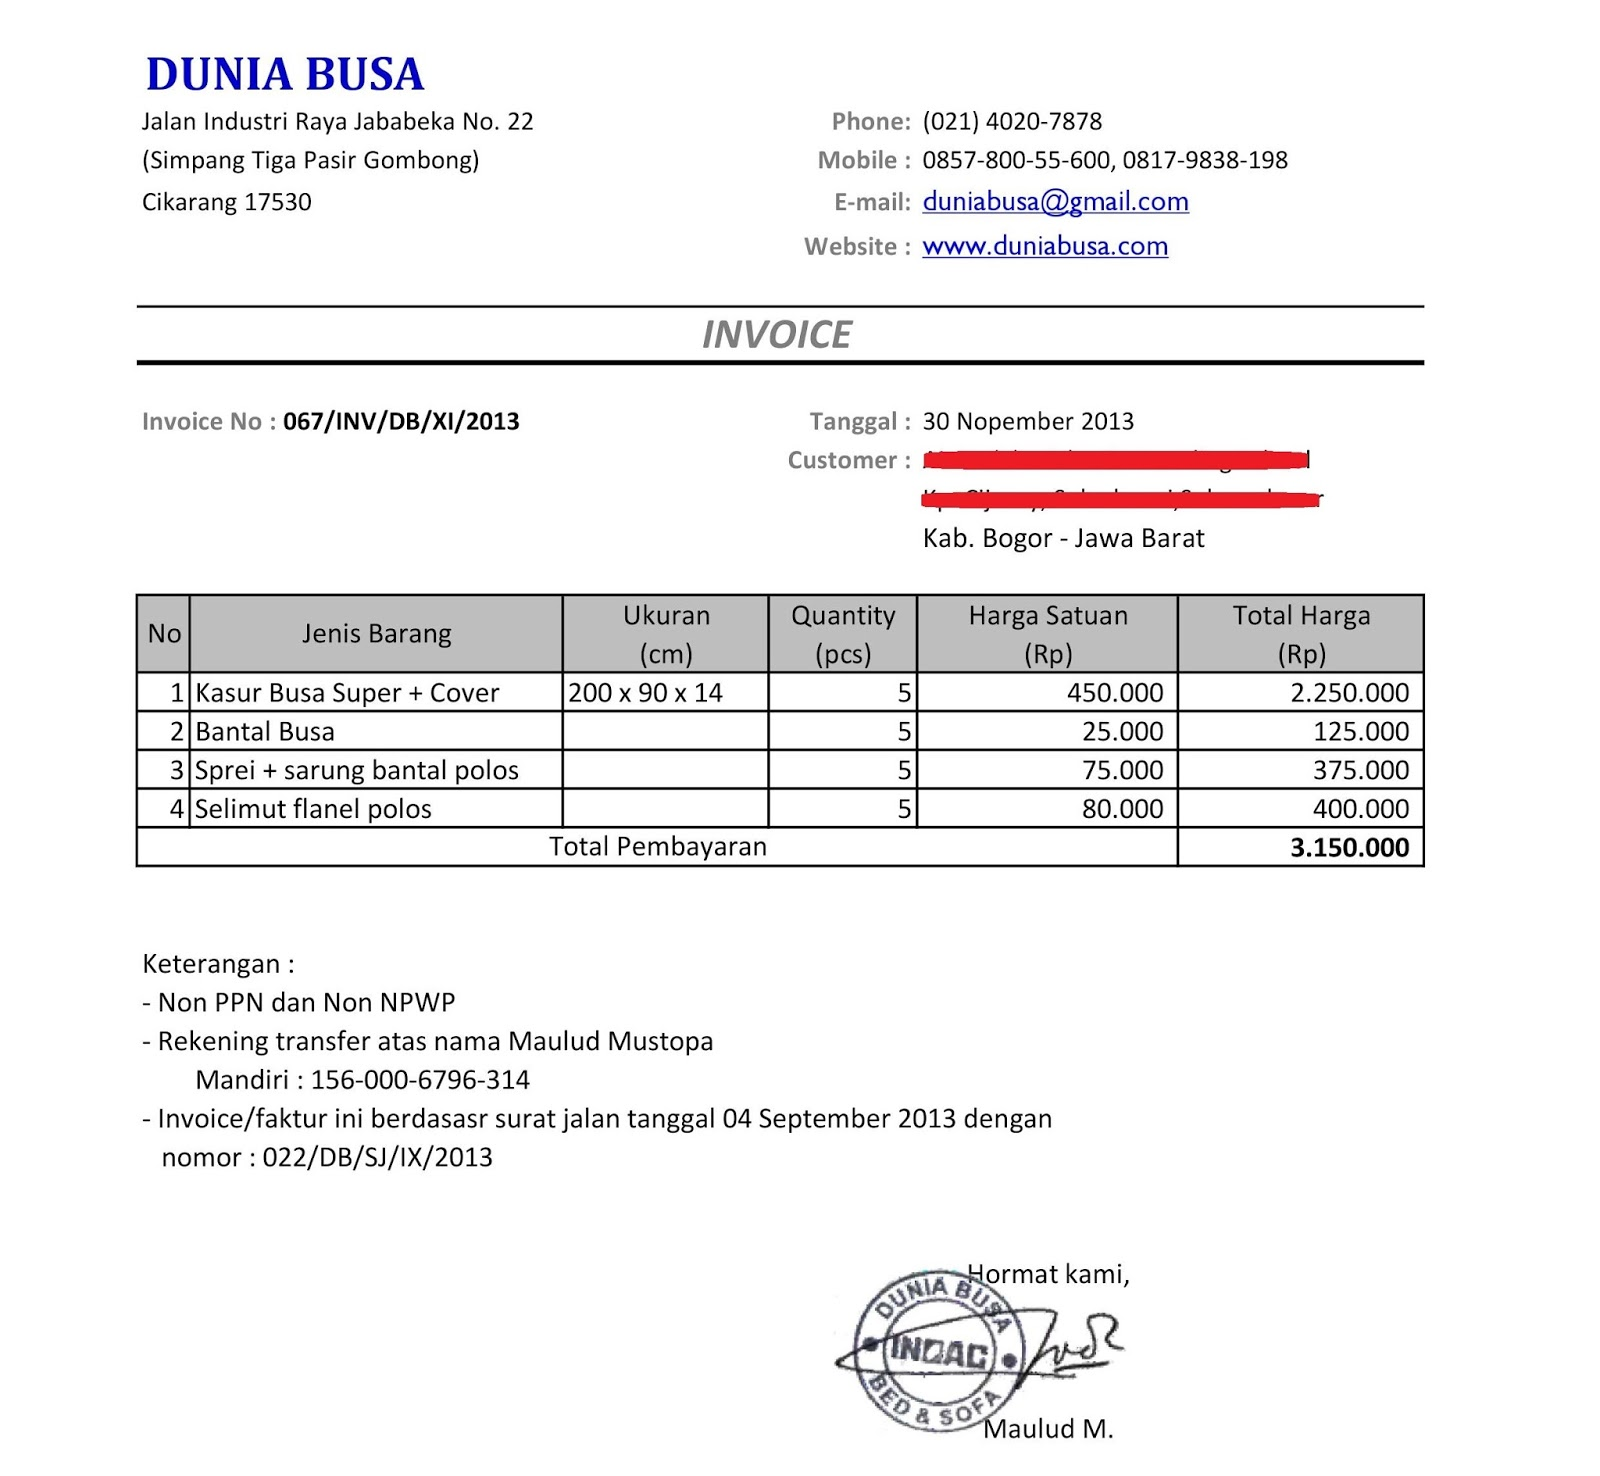 Usdgus  Picturesque Free Invoice Online  Create Invoice Online  Invoice Template  With Luxury Contoh Format Invoice Atau Surat Tagihan  Brankas Arsip  Free Invoice Online With Archaic Sample Of Proforma Invoice For Export Also Sending Invoices By Email In Addition Example Sales Invoice And Printable Invoices Free Template As Well As About Invoice Additionally Sample Of An Invoice Template From Sklepco With Usdgus  Luxury Free Invoice Online  Create Invoice Online  Invoice Template  With Archaic Contoh Format Invoice Atau Surat Tagihan  Brankas Arsip  Free Invoice Online And Picturesque Sample Of Proforma Invoice For Export Also Sending Invoices By Email In Addition Example Sales Invoice From Sklepco